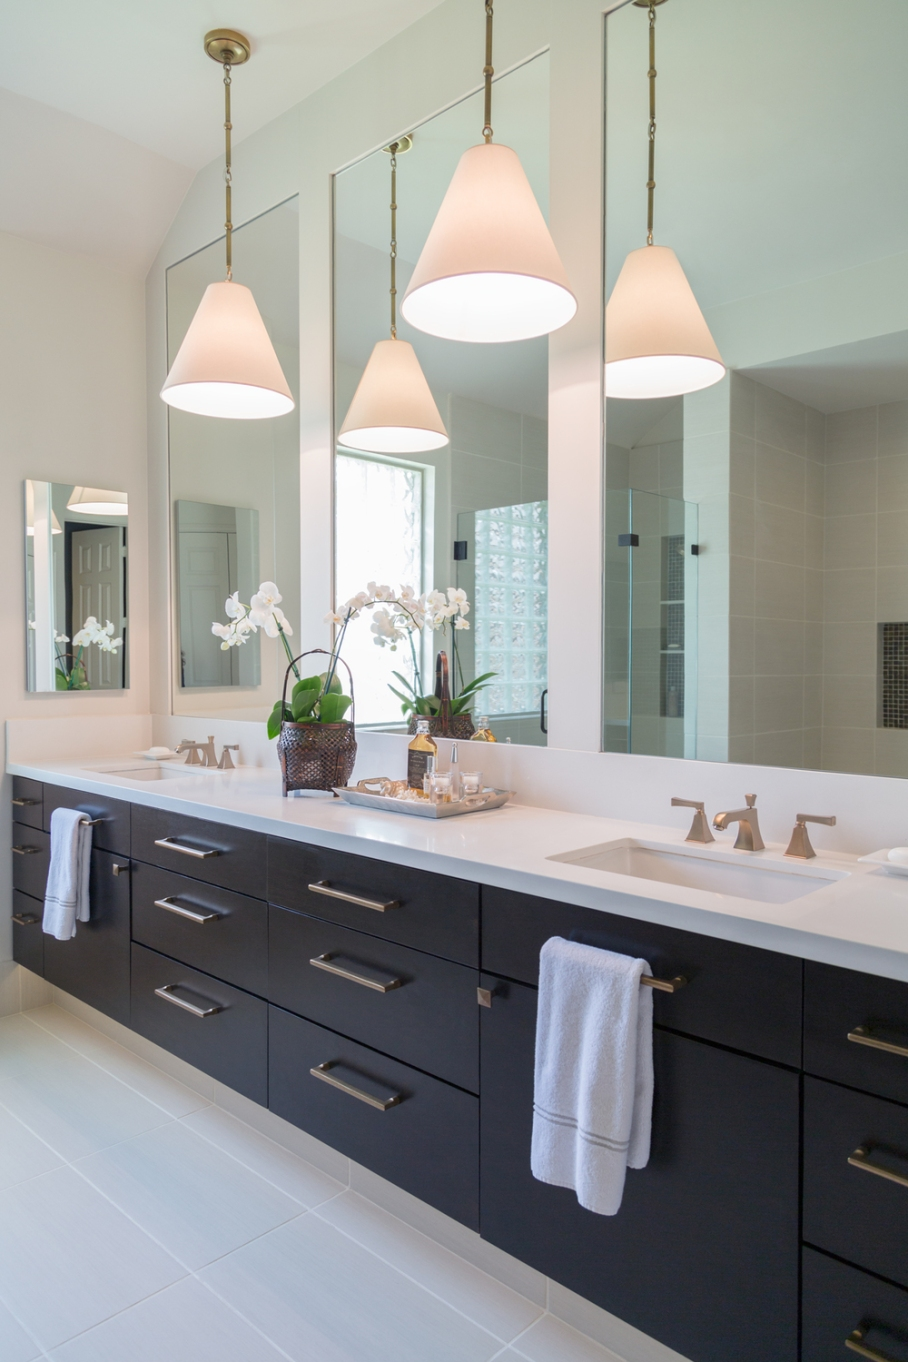 Bathroom remodel; vanity; cabinetry; mirror; decor; lighting; sink; fixture; flooring | Interior designer: Carla Aston / Photographer: Tori Aston